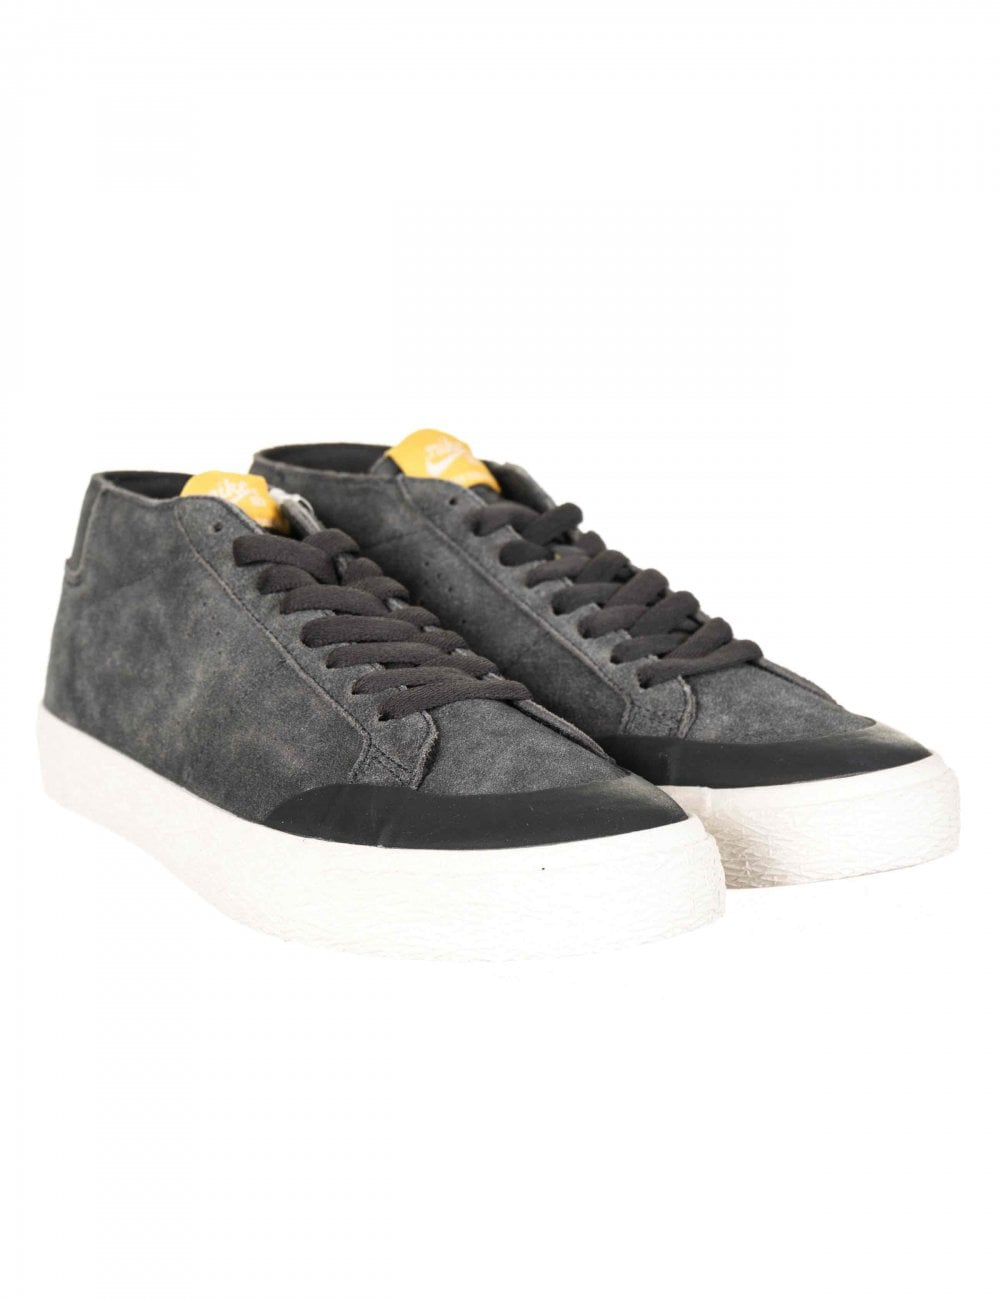 535dc1847d2f Nike SB Zoom Blazer Chukka XT Trainers - Anthracite (Lance Mountain Pack) -  Footwear from Fat Buddha Store UK